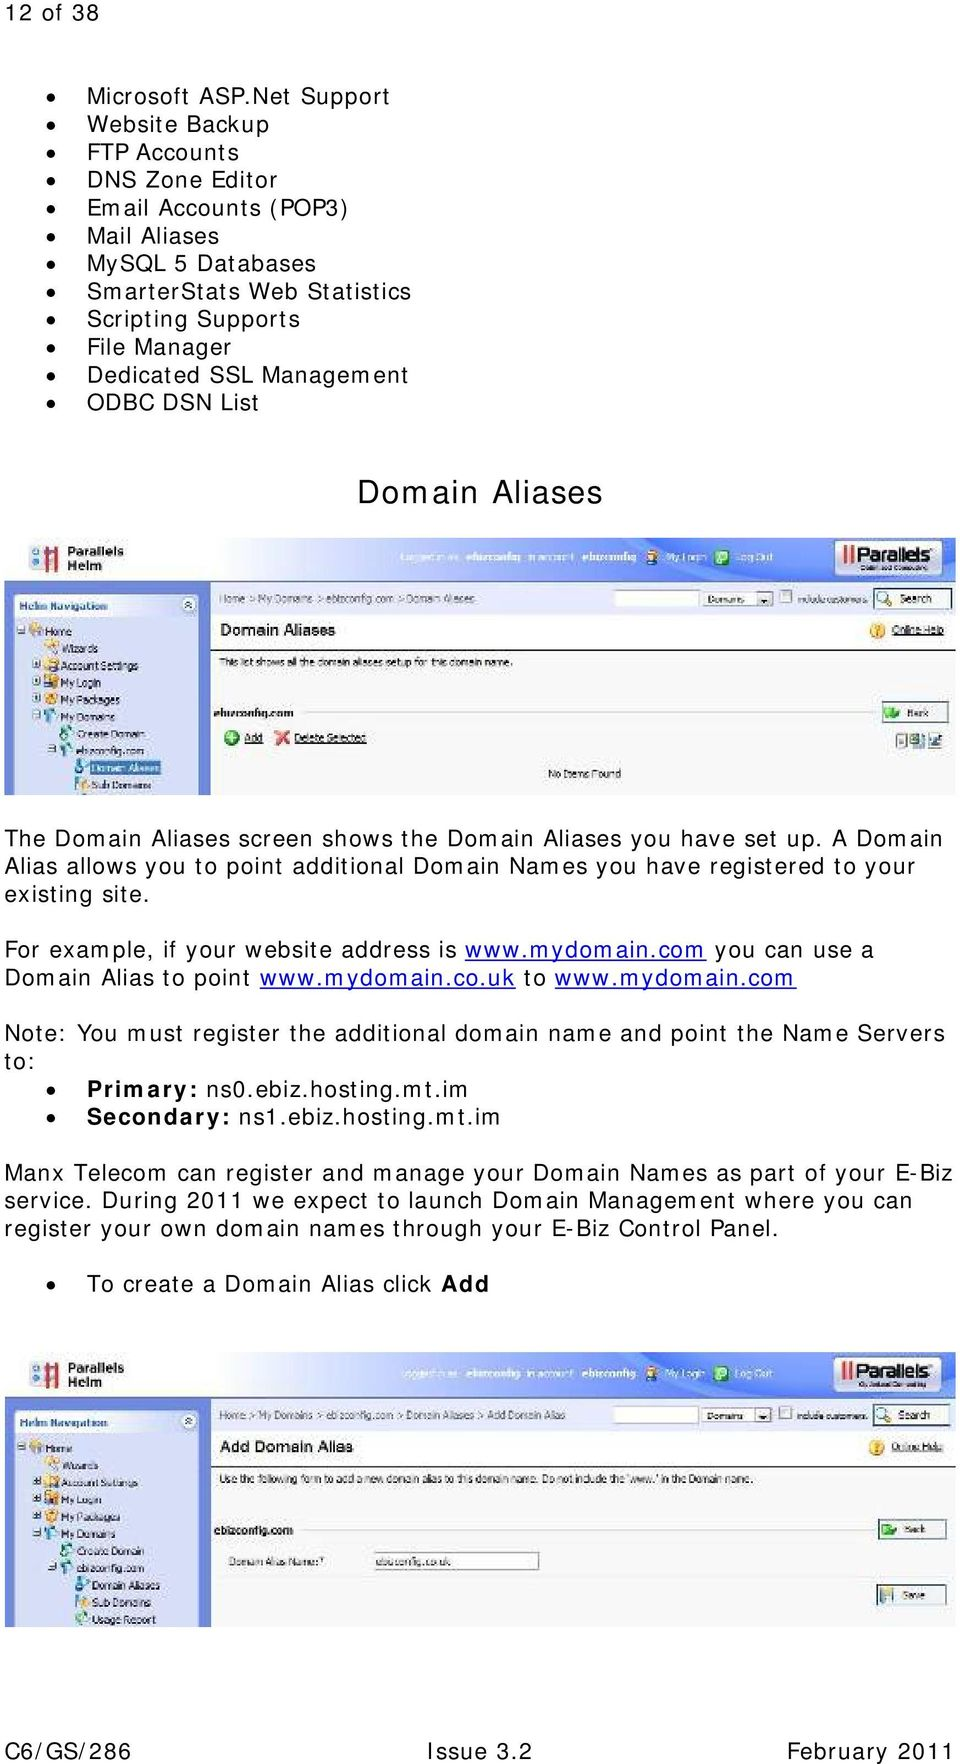 List Dmain Aliases The Dmain Aliases screen shws the Dmain Aliases yu have set up. A Dmain Alias allws yu t pint additinal Dmain Names yu have registered t yur existing site.